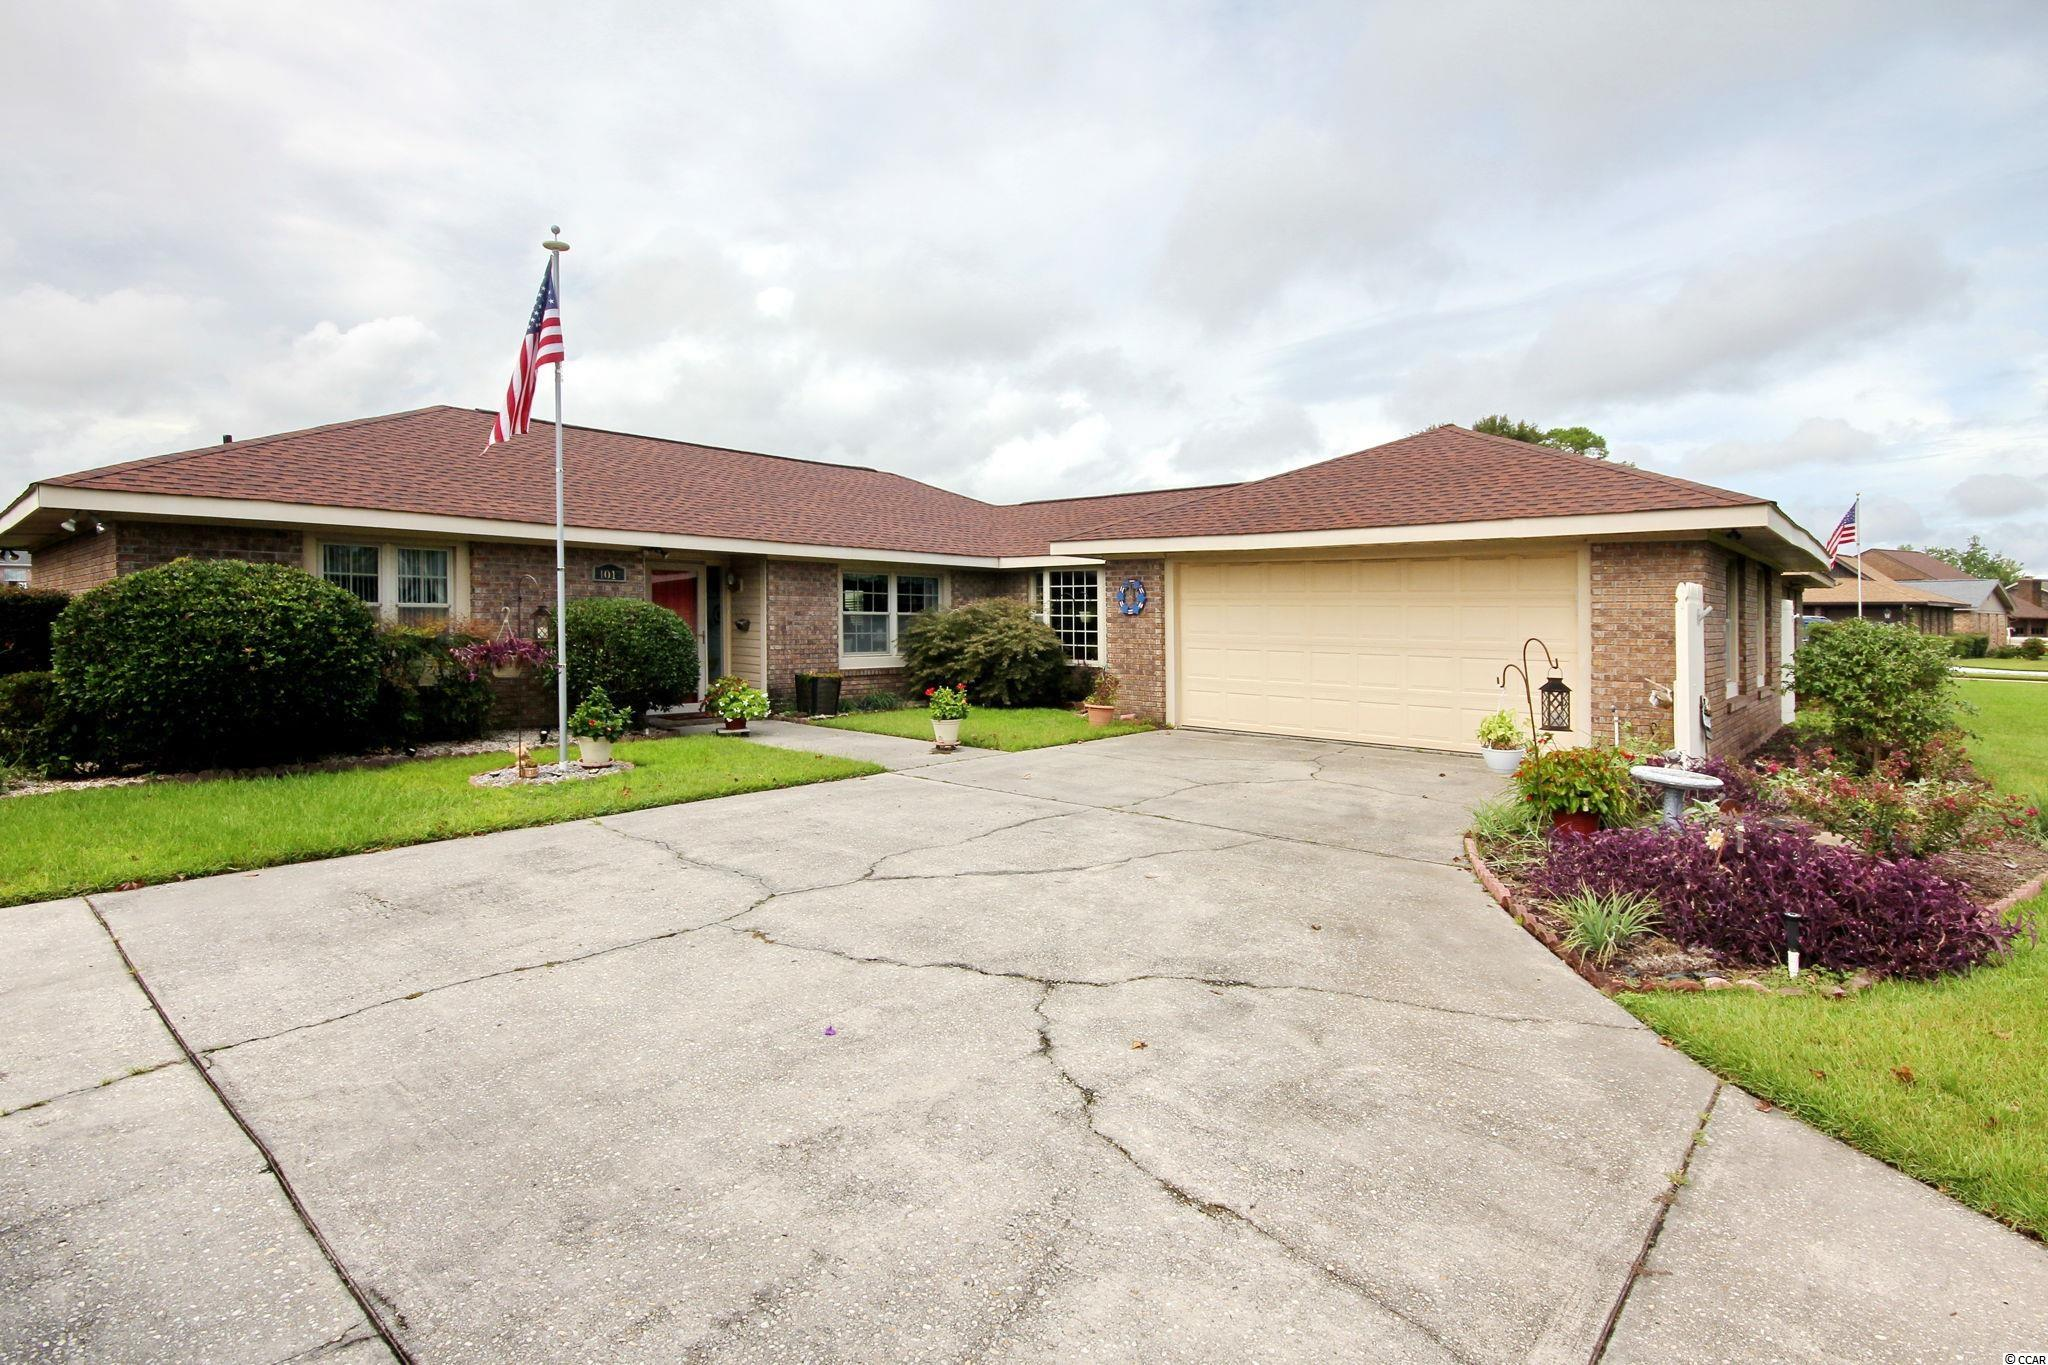 This Deerfield development is very sought after. Quiet neighborhood for convenience and privacy. It is located off business 17 and close to shopping, restaurants, and of course the beach. This nicely landscaped brick ranch style home boasts a wood burning fireplace, hurricane proof windows for loads of natural light, newer roof, HVAC unit, and hot water tank. This home features a bonus room just perfect for relaxing as you look out the many windows onto the back yard. The back patio is very nice for entertaining or enjoying the fresh air. You don't want to miss the opportunity to snap up this gem